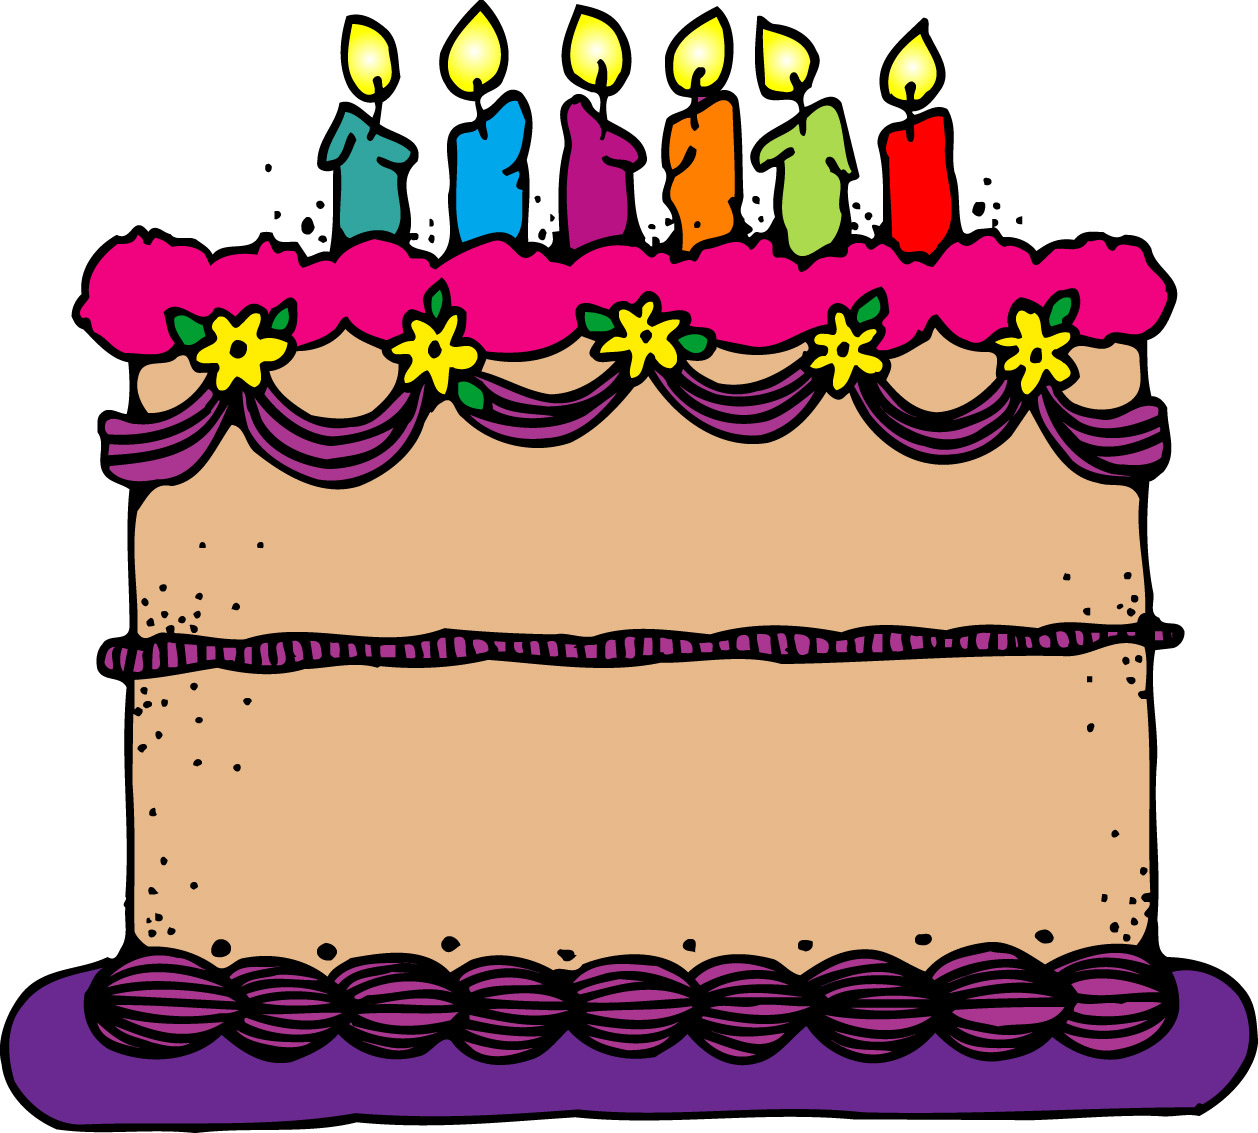 1258x1133 Birthday Cake Clip Art Free Clipart Images 4